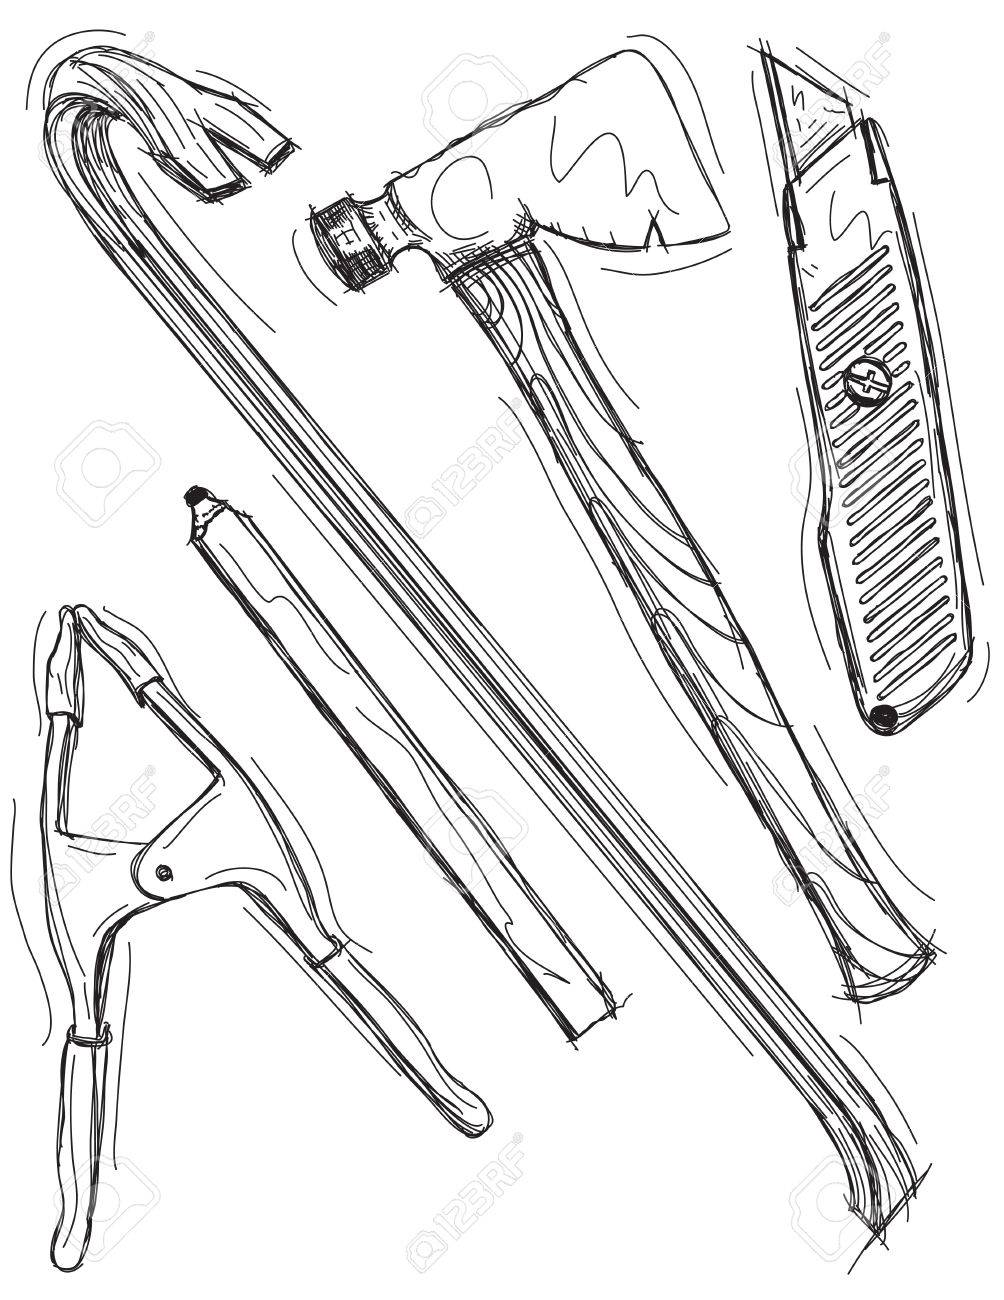 1004x1300 Construction Tool Drawings Royalty Free Cliparts, Vectors,